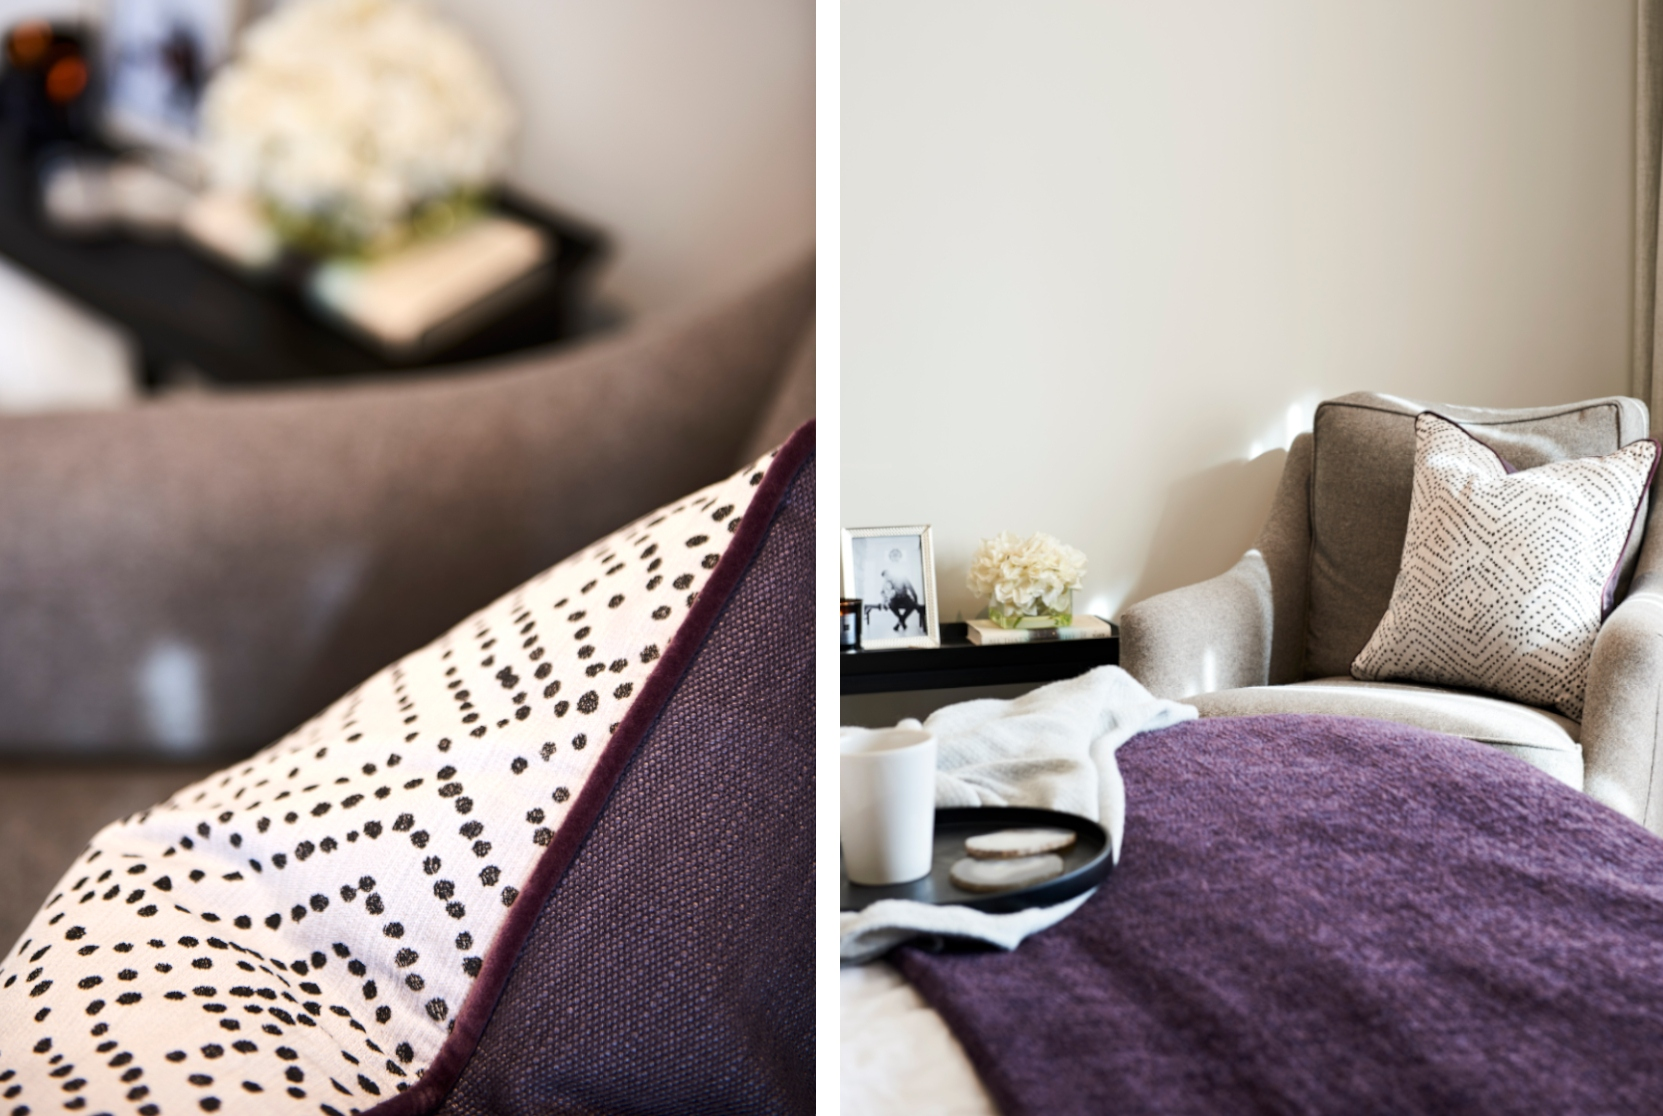 Piped cushions and bedroom chair - Interior design